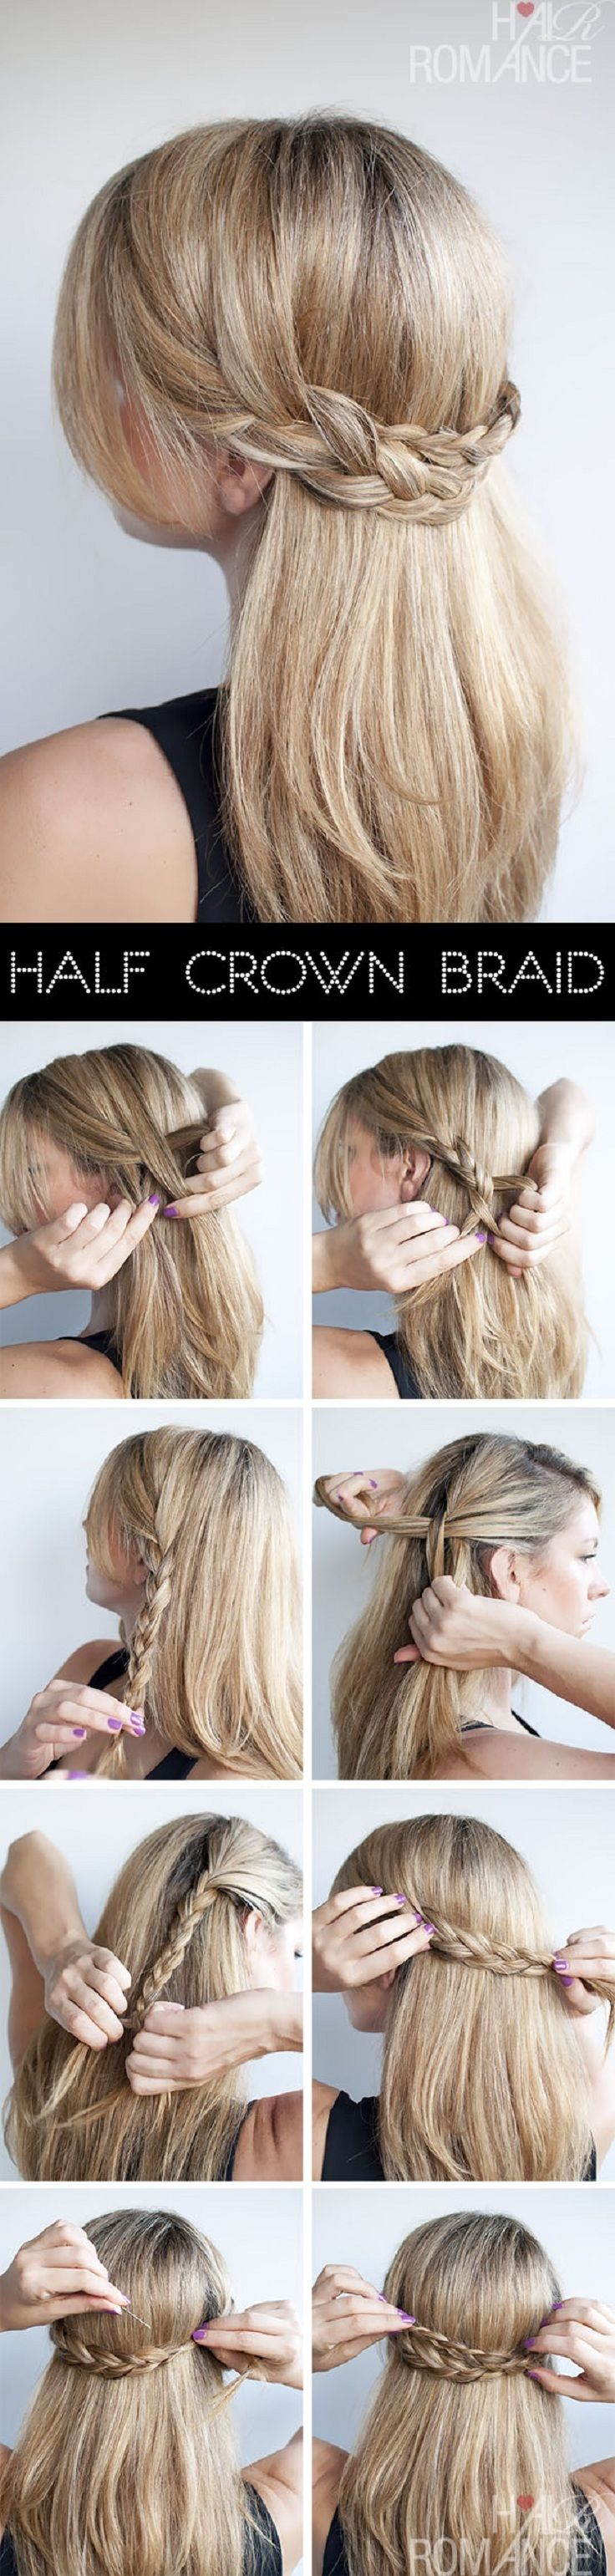 Try this amazing half crown braid for a romantic night out in the city! Find you...